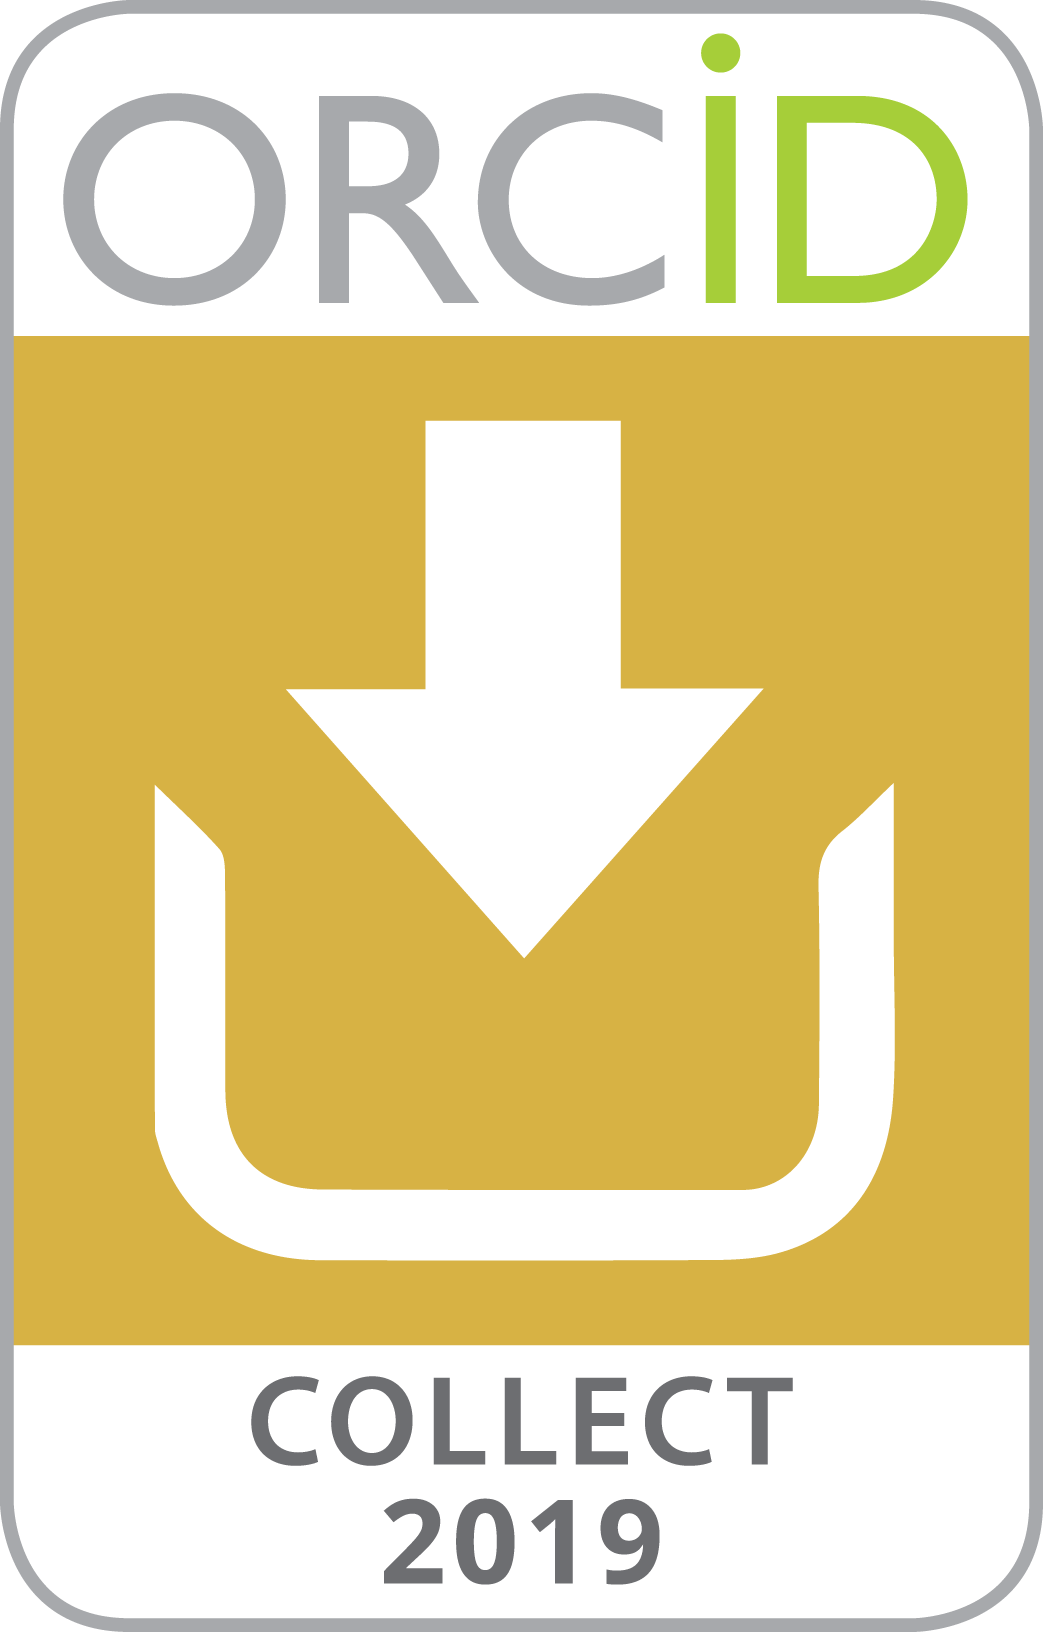 2019 ORCID Collect & Connect badge -- Connect